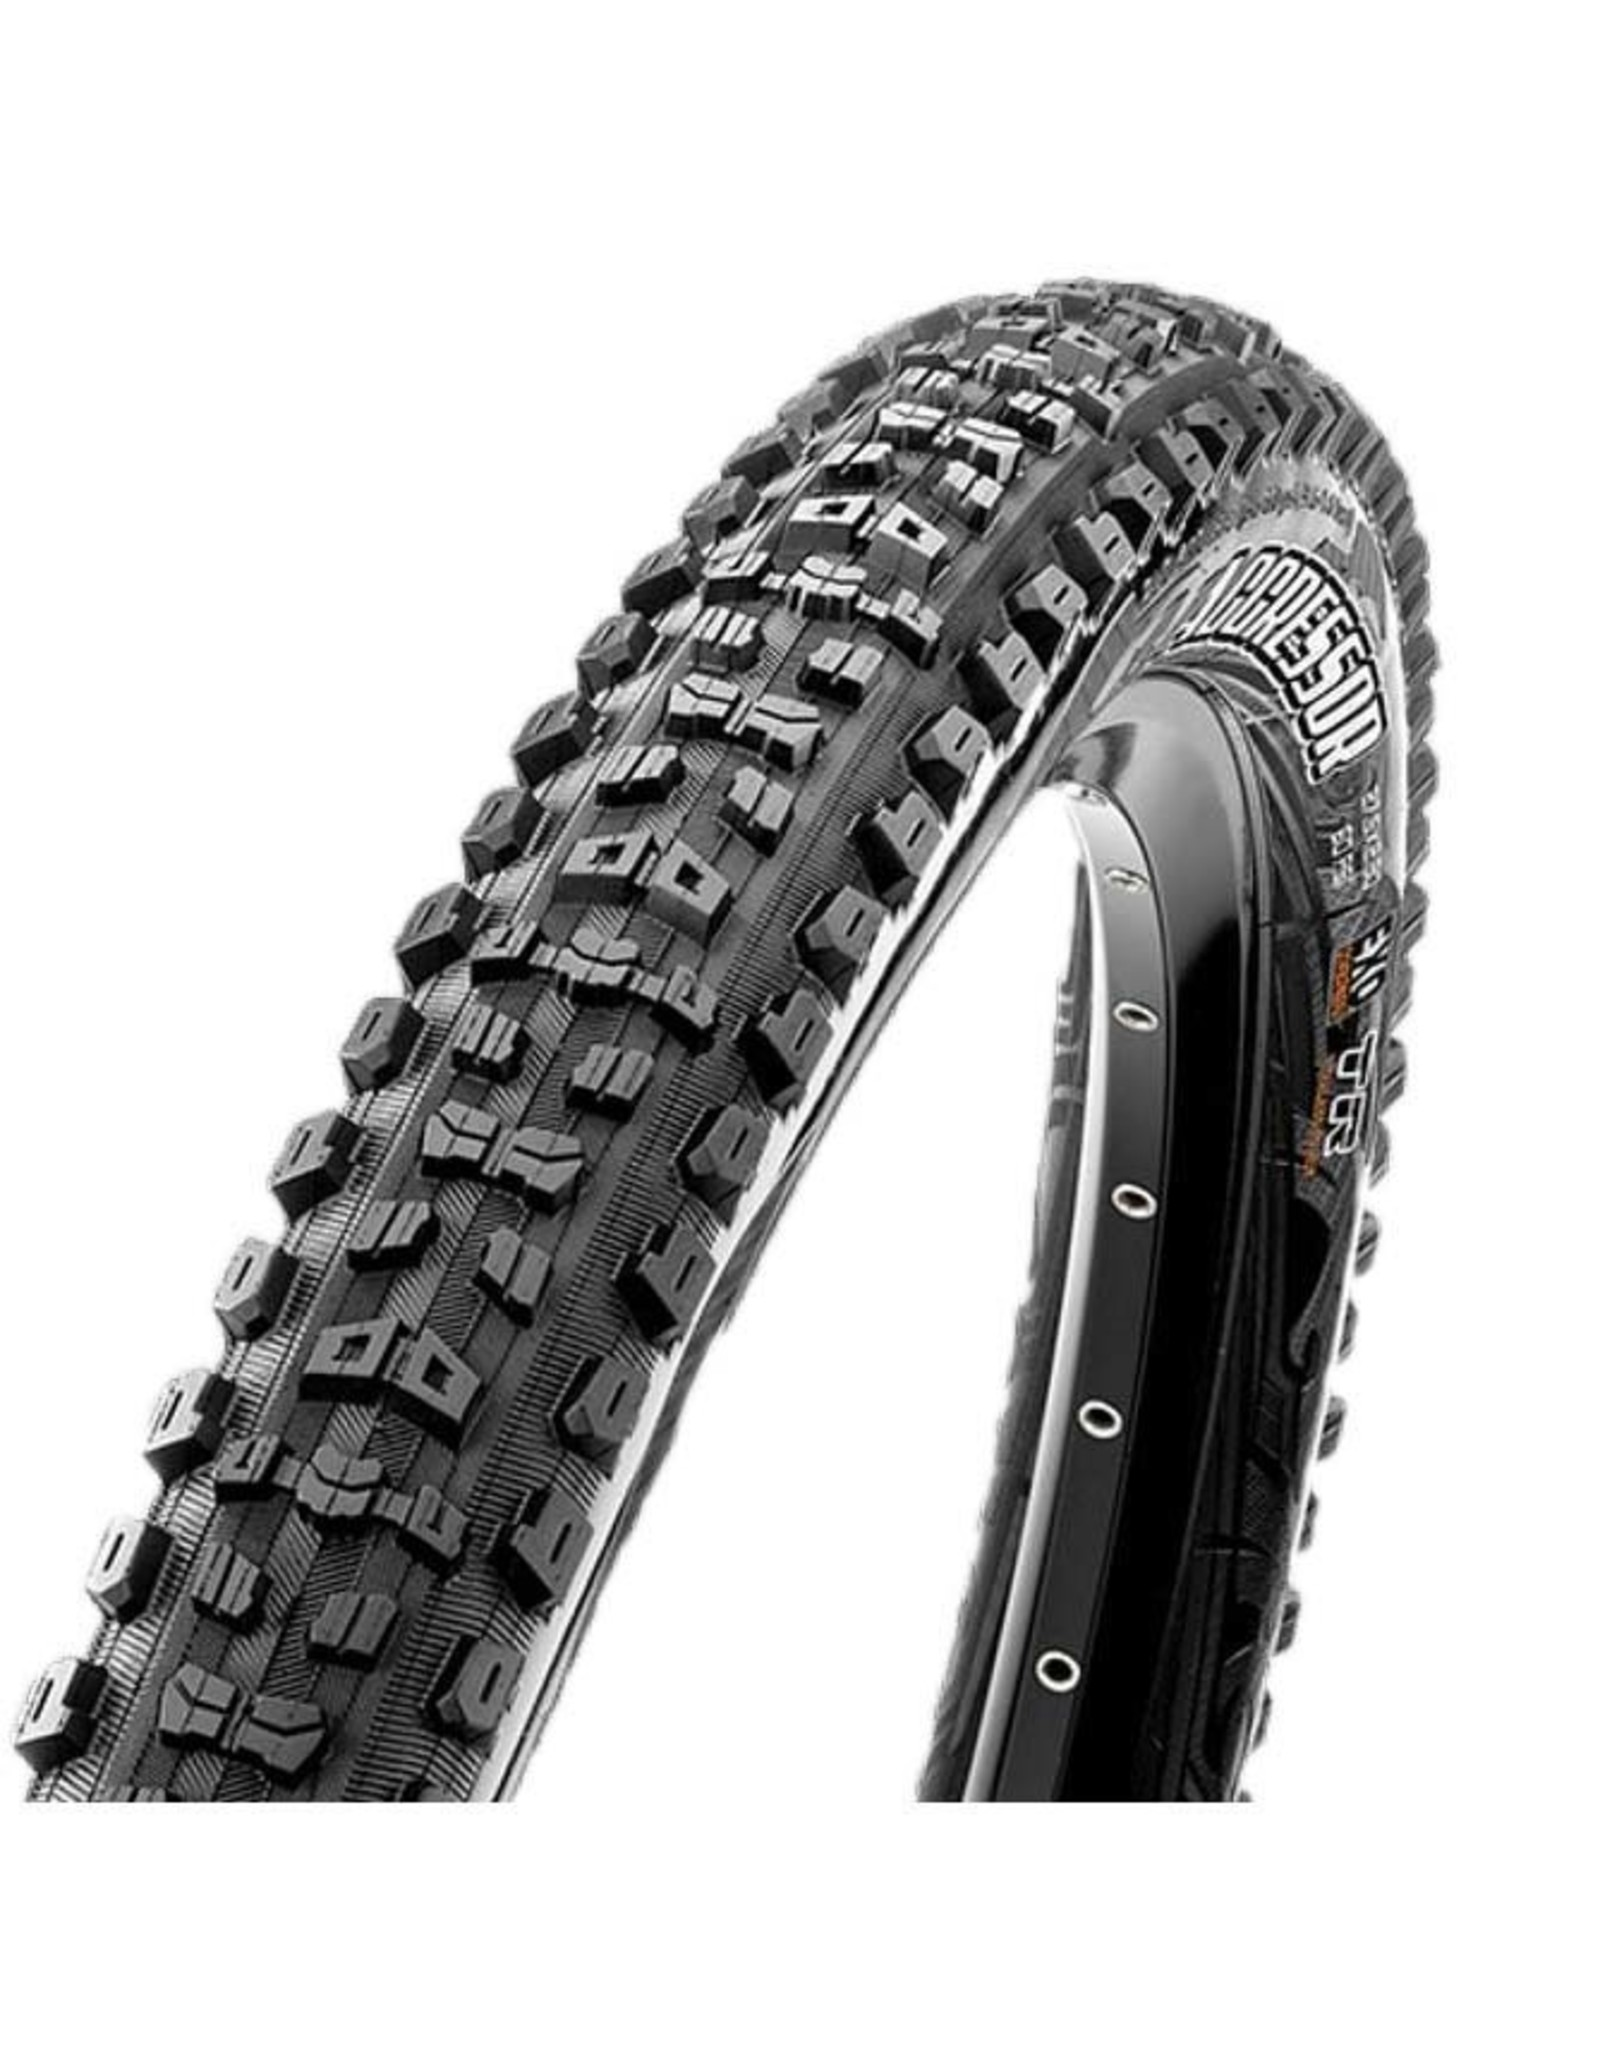 Maxxis Maxxis, Aggressor, Pneu, 29''x2.50, Pliable, Tubeless Ready, Dual, EXO, Wide Trail, 60TPI, Noir